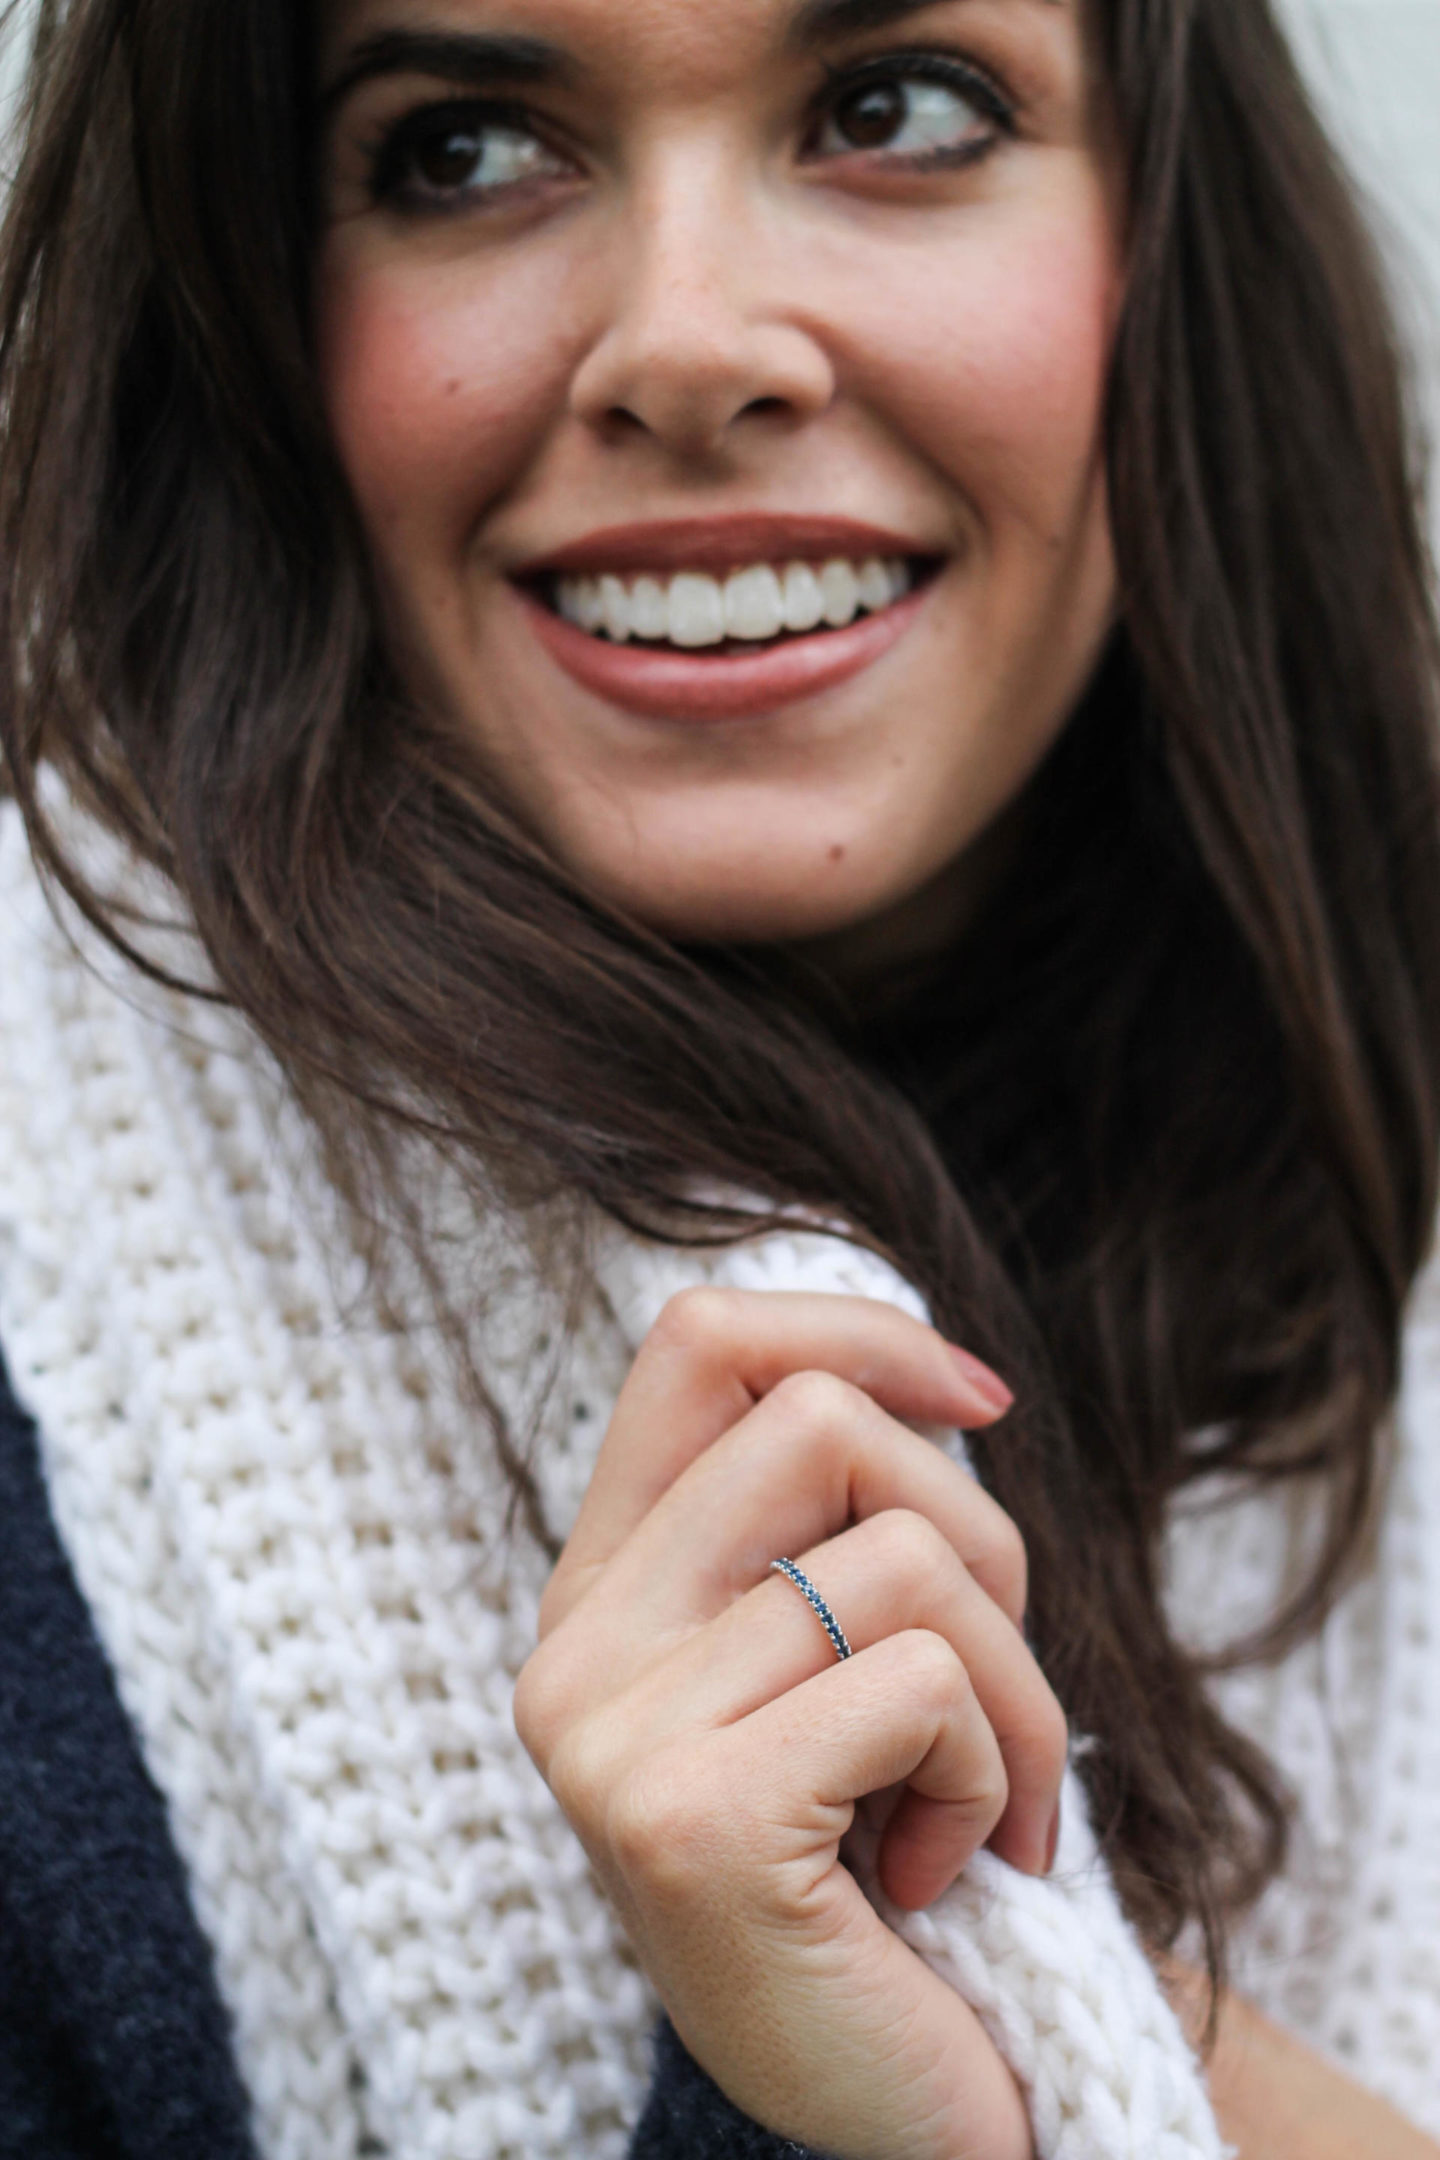 Give Blue Nile Jewelry This Christmas by New York fashion blogger Style Waltz